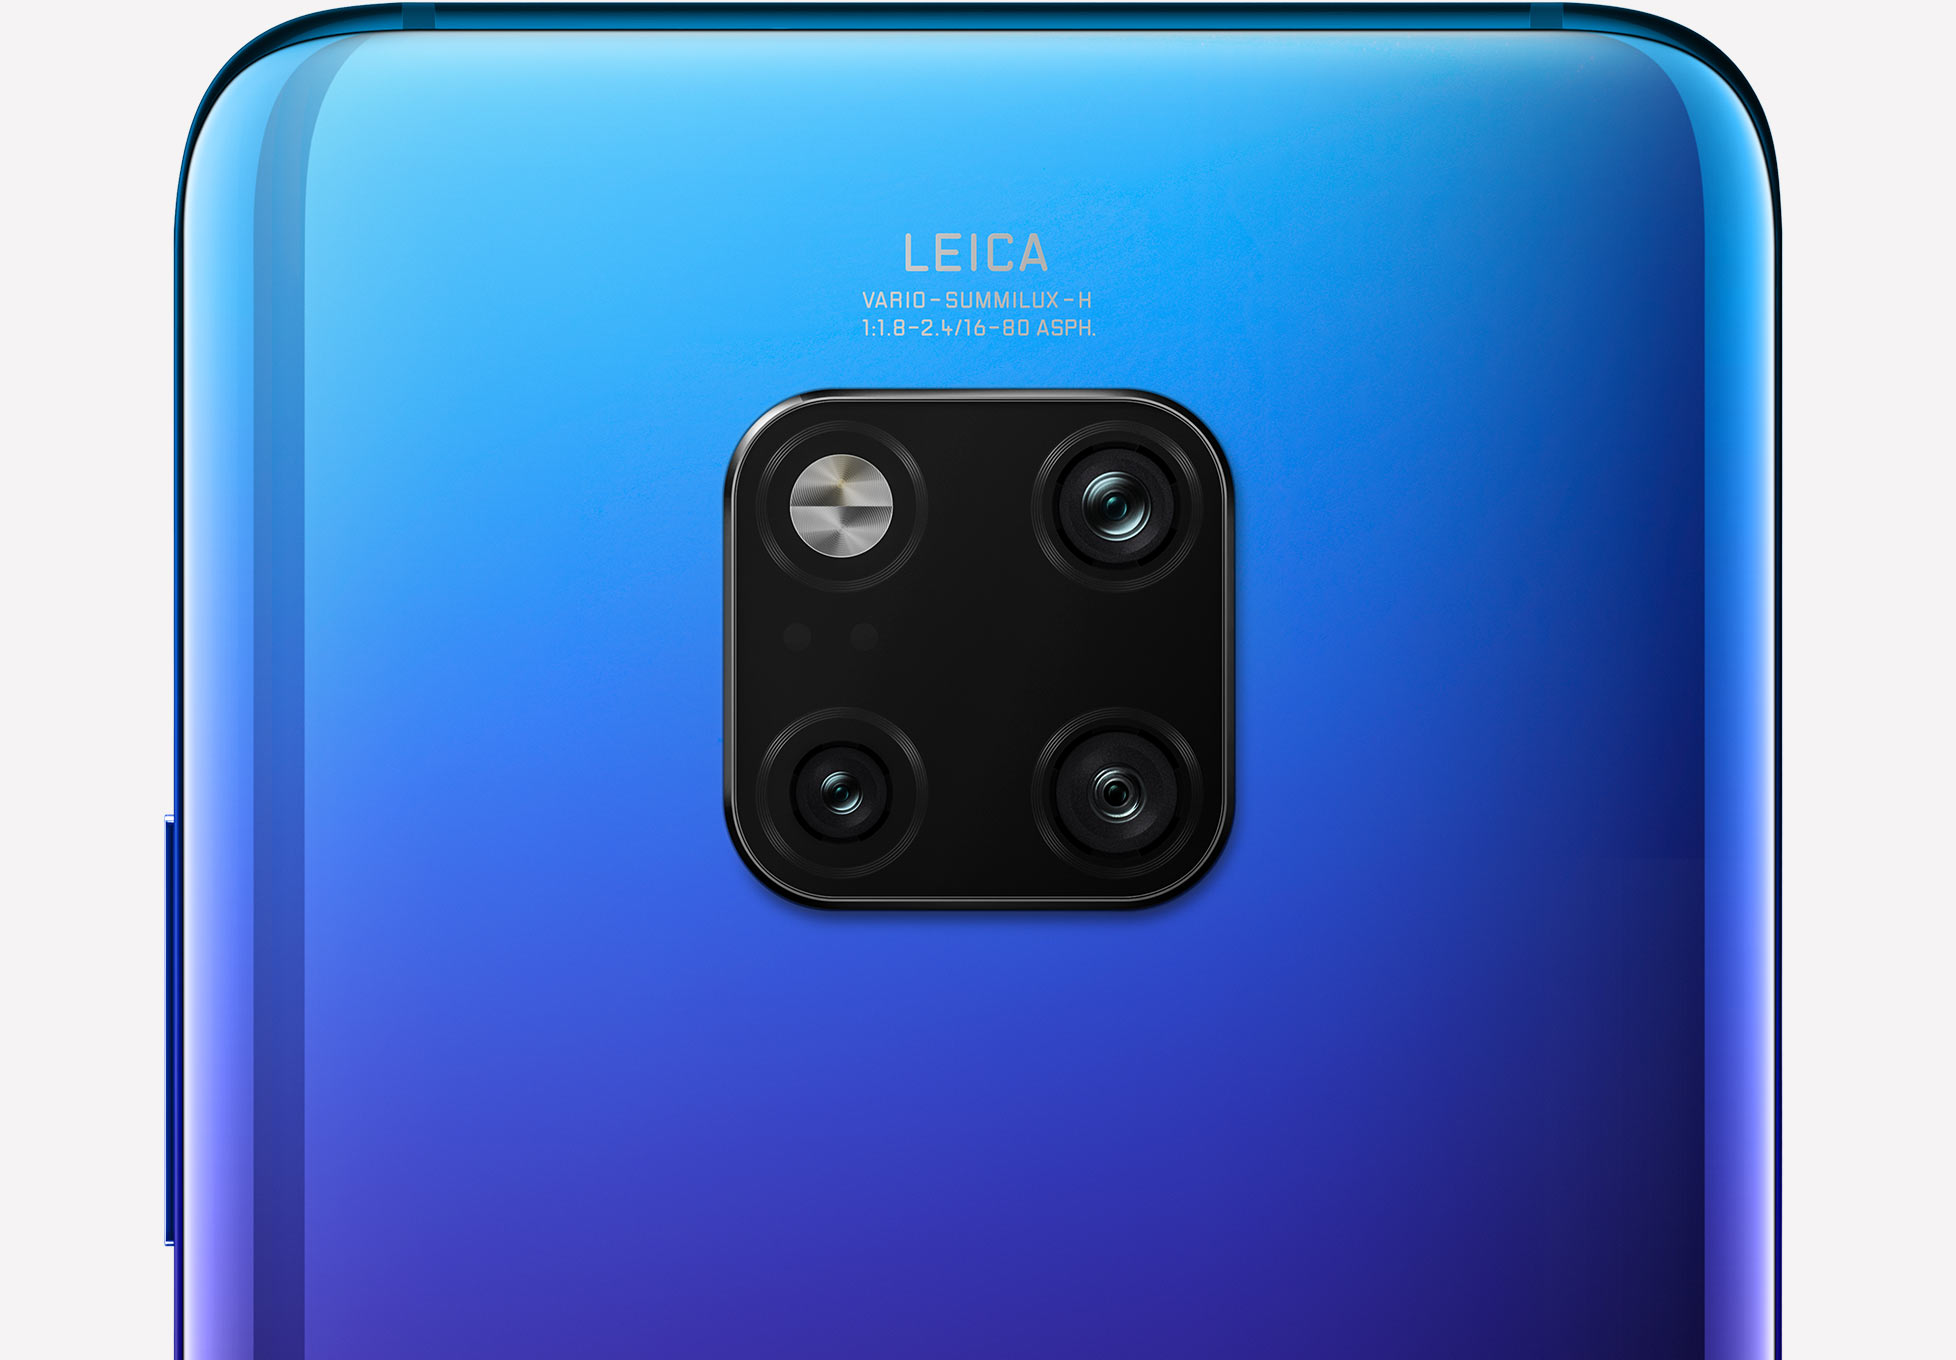 Los Huawei Mate 20 y Mate 20 Pro ya son oficiales